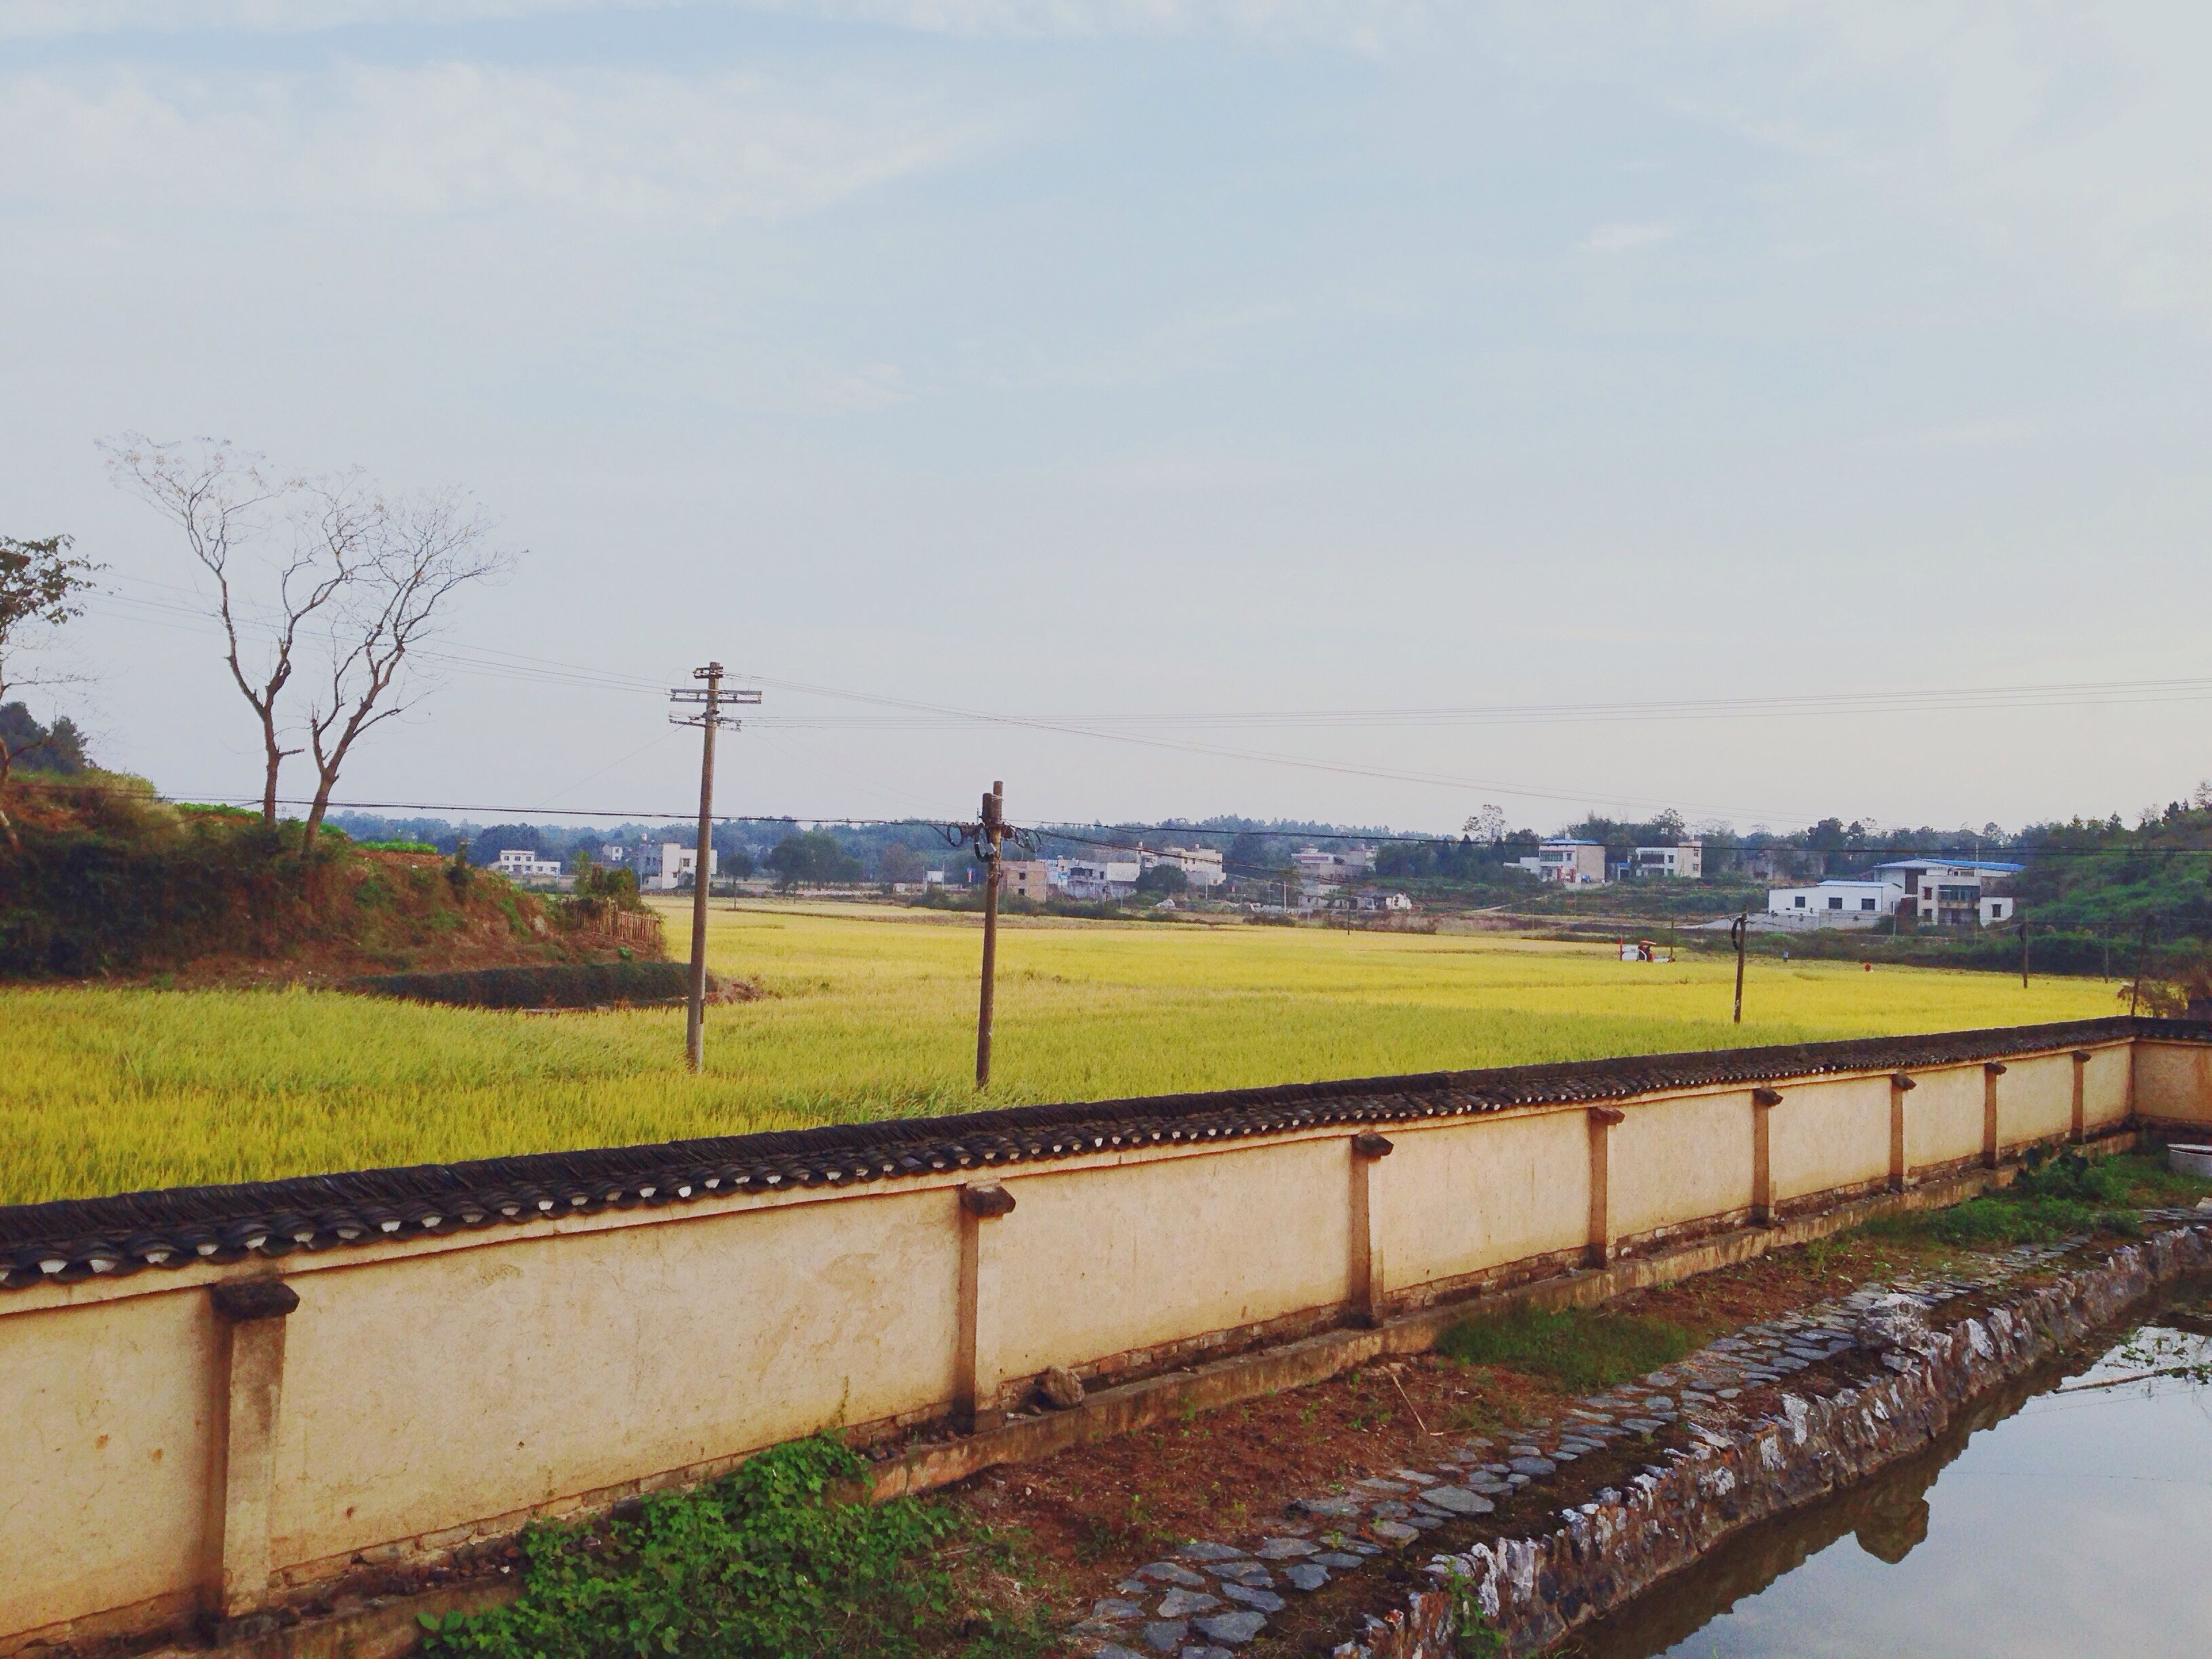 sky, field, power line, electricity pylon, landscape, tranquil scene, connection, rural scene, tranquility, nature, tree, growth, agriculture, railroad track, electricity, beauty in nature, green color, grass, scenics, fuel and power generation